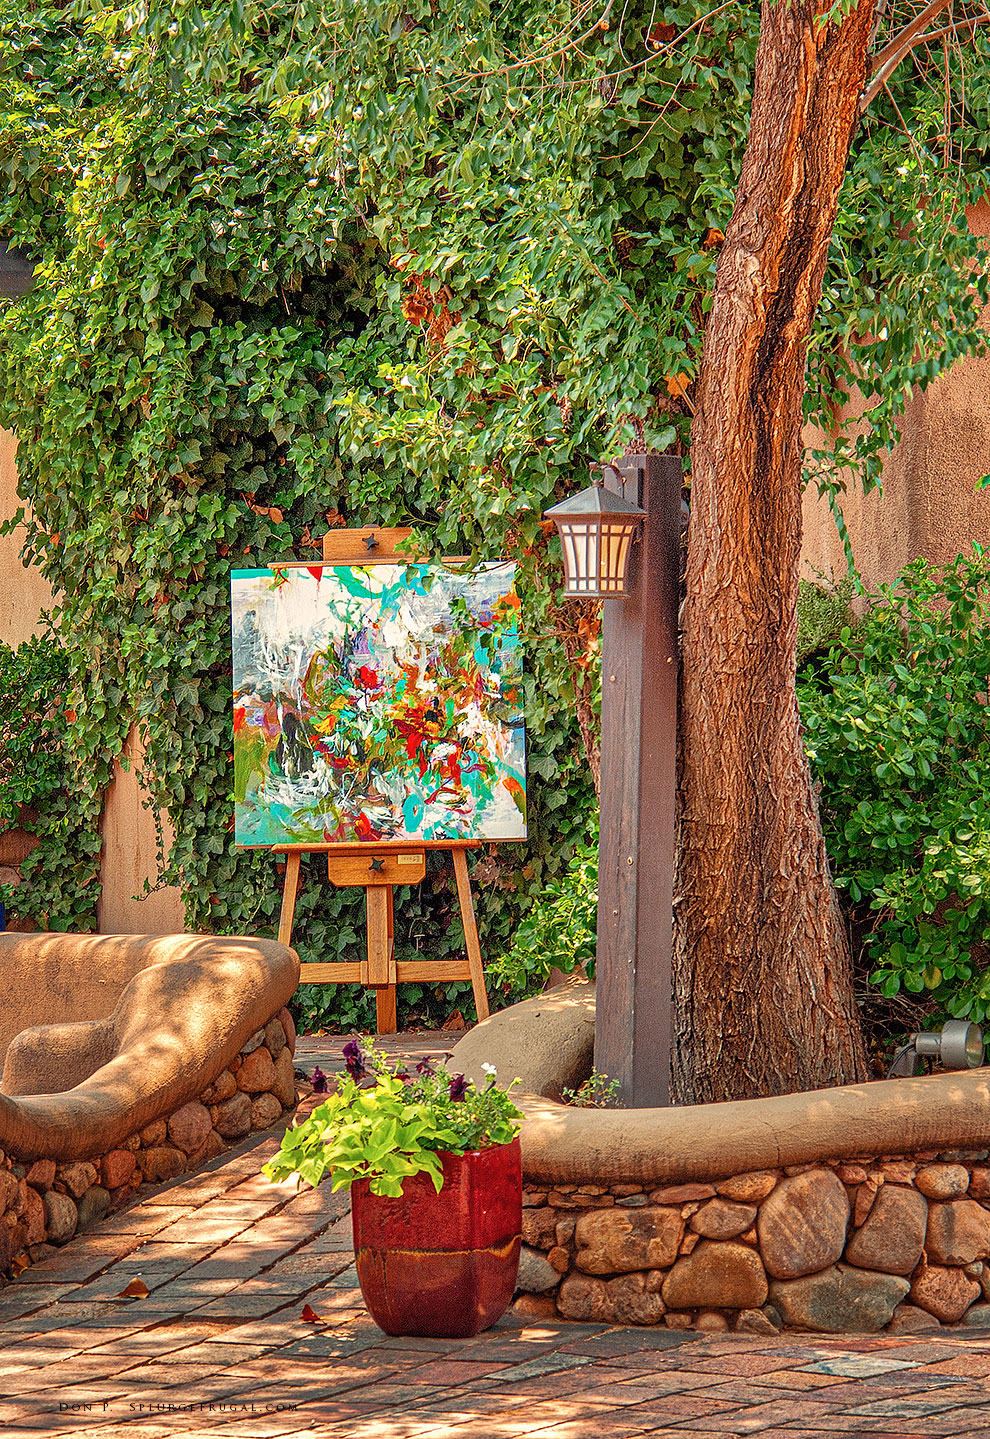 Art is everywhere in Santa Fe, New Mexico!